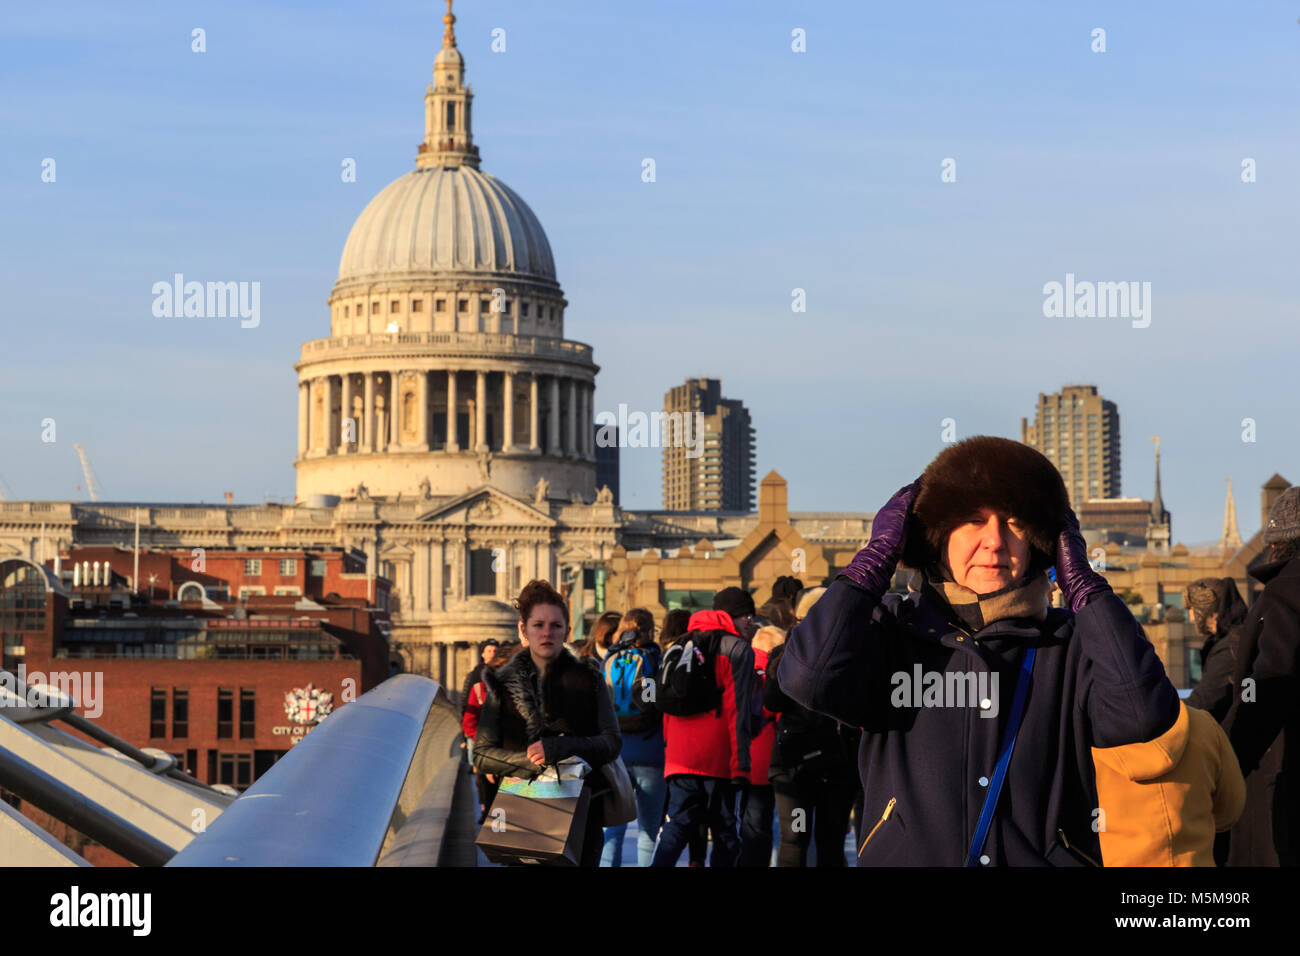 Millennium Bridge, London, 24th Feb 2018. Londoners and tourists enjoy a beautifully sunny but freezing cold and Stock Photo